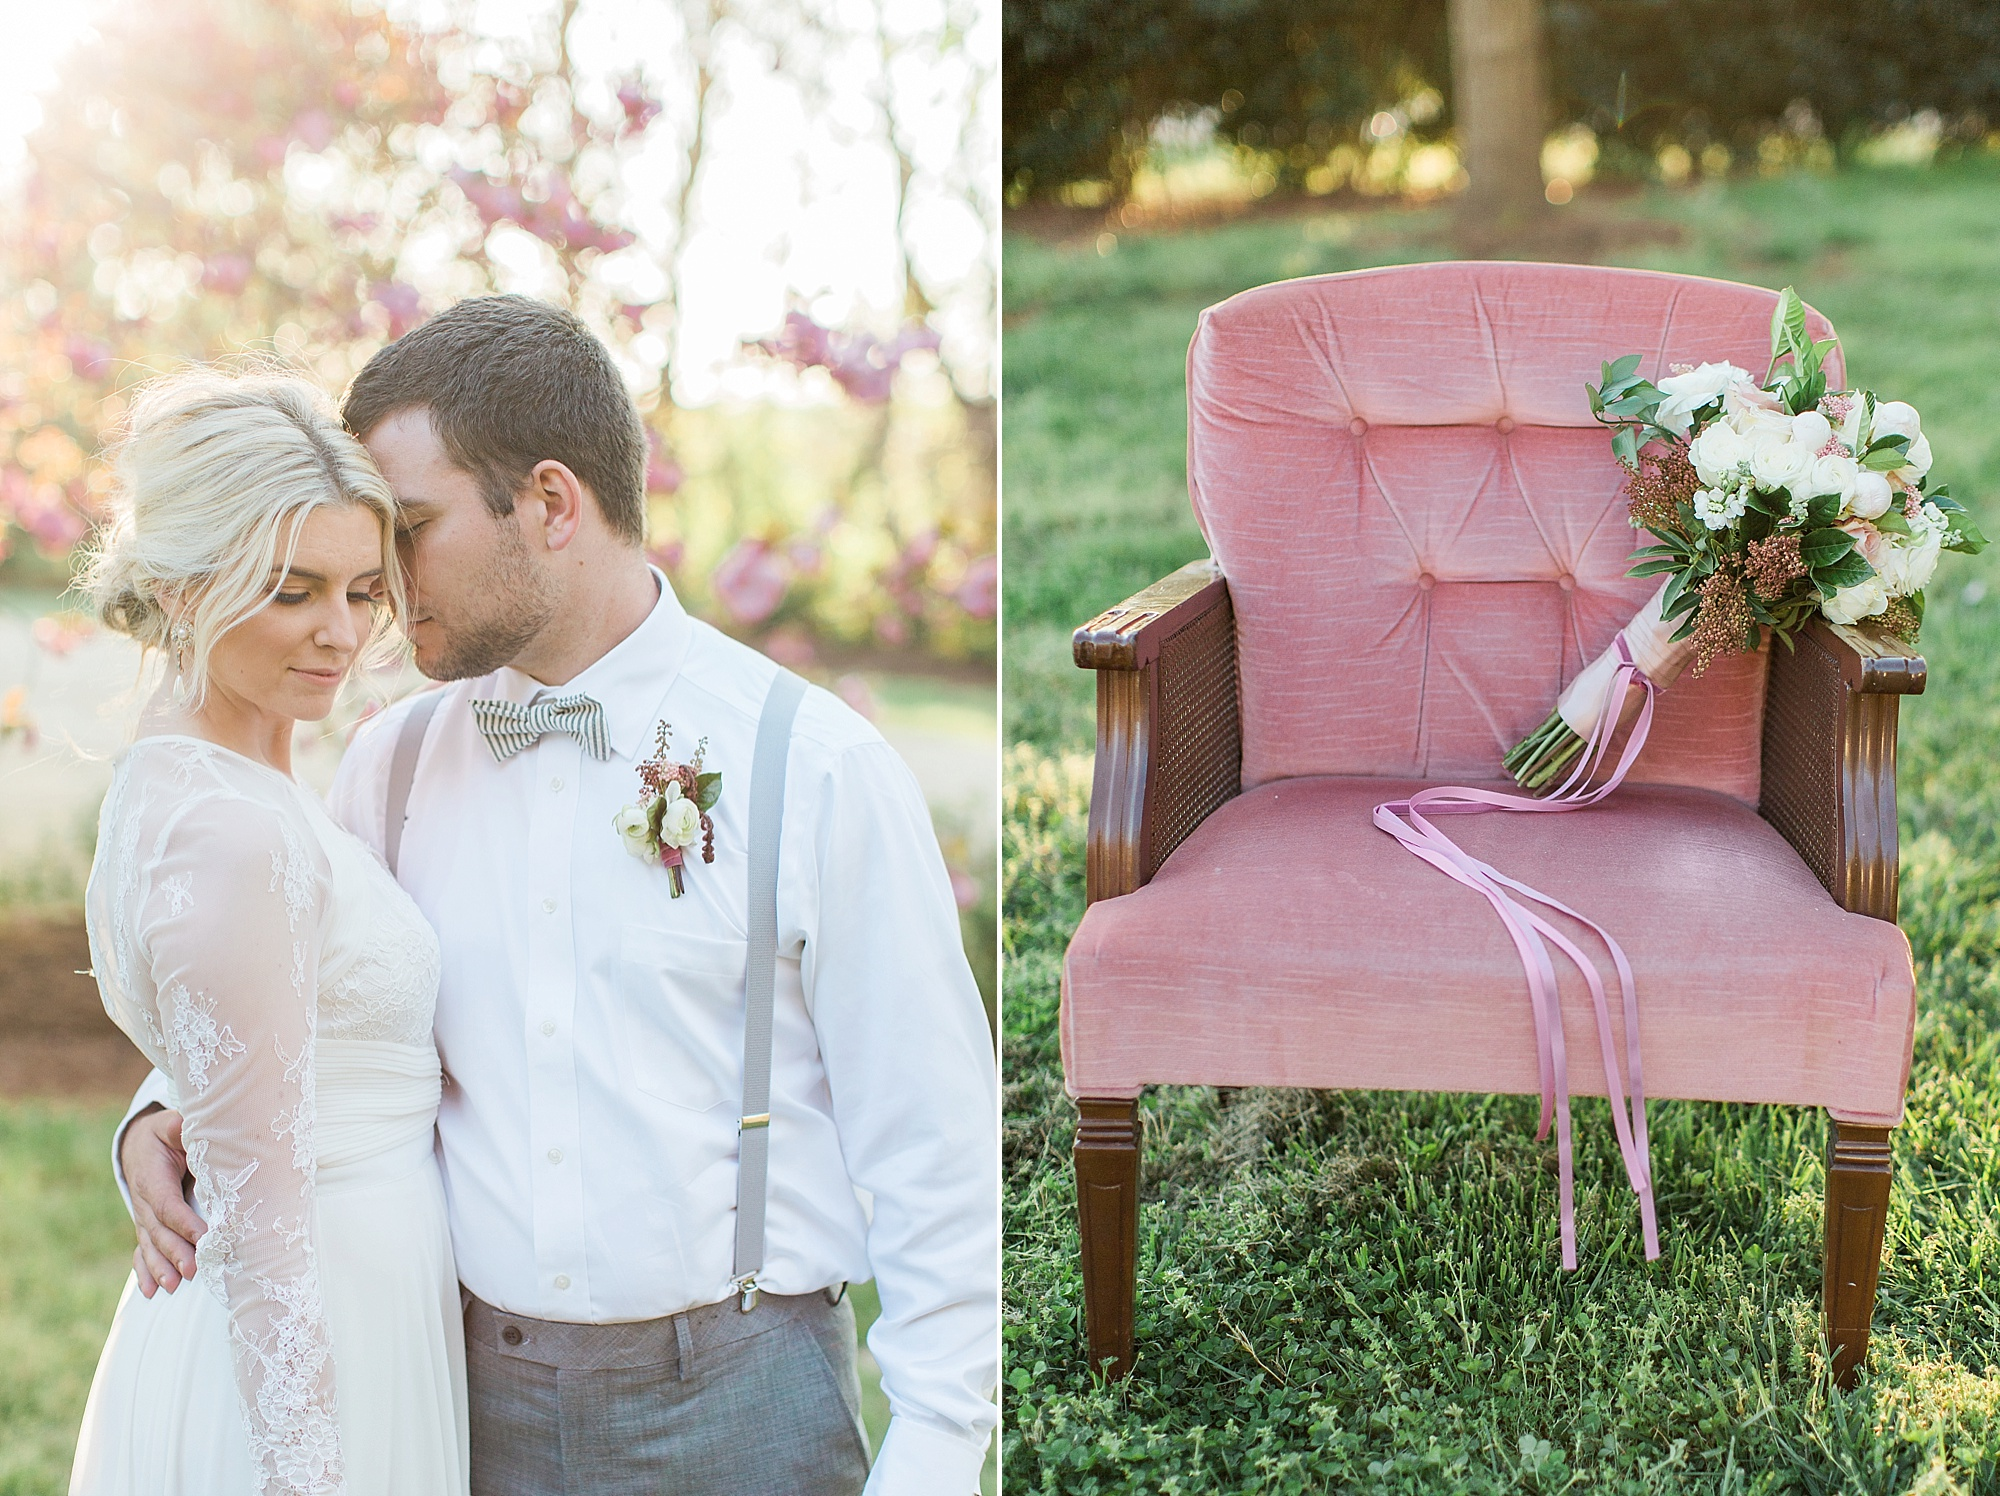 Wedding photographer in Triad